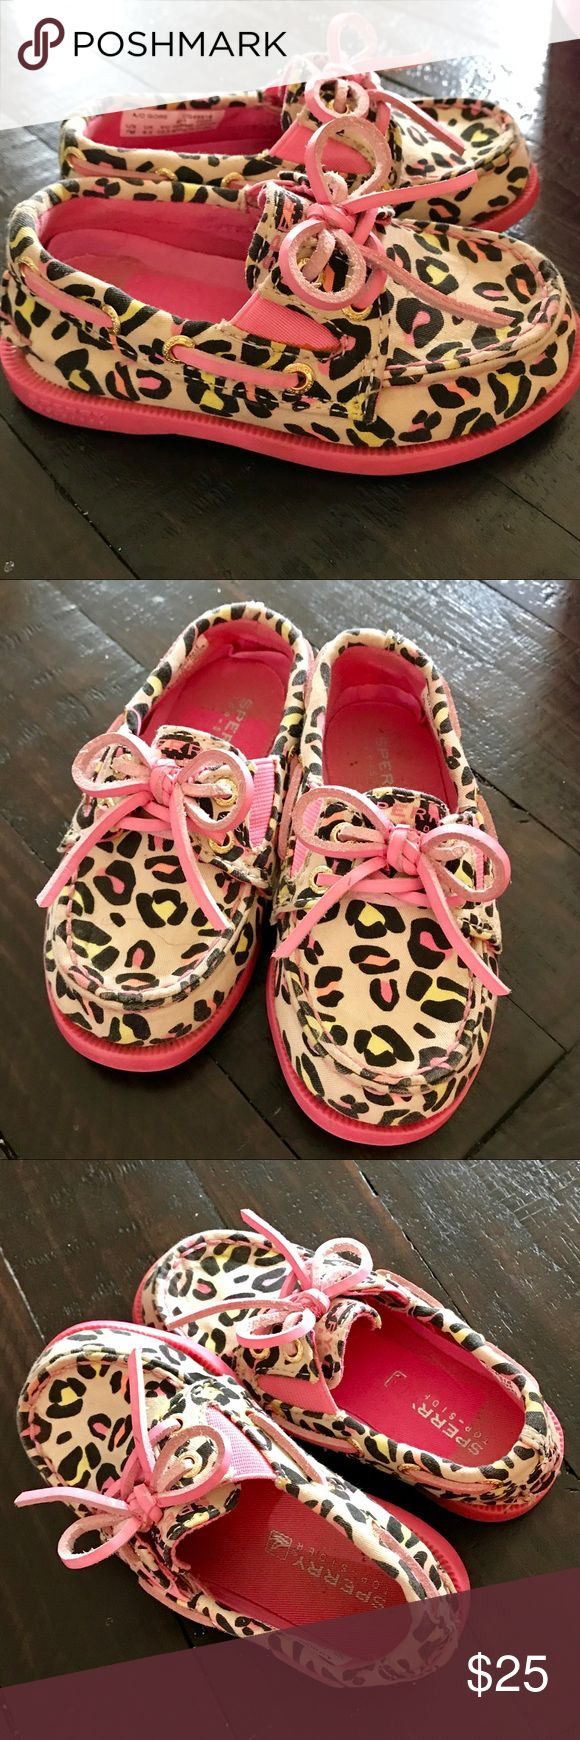 Pink Leopard Print Sperry's! Fabulously fierce, these Sperry's are the bees knees! Size 7 toddler. Used, but well kept. The only slight imperfection is the discoloration on the insoles from where the sales sticker was peeled off. The perfect shoe for the style conscious toddler or pre-schooler! Sperry Top-Sider Shoes